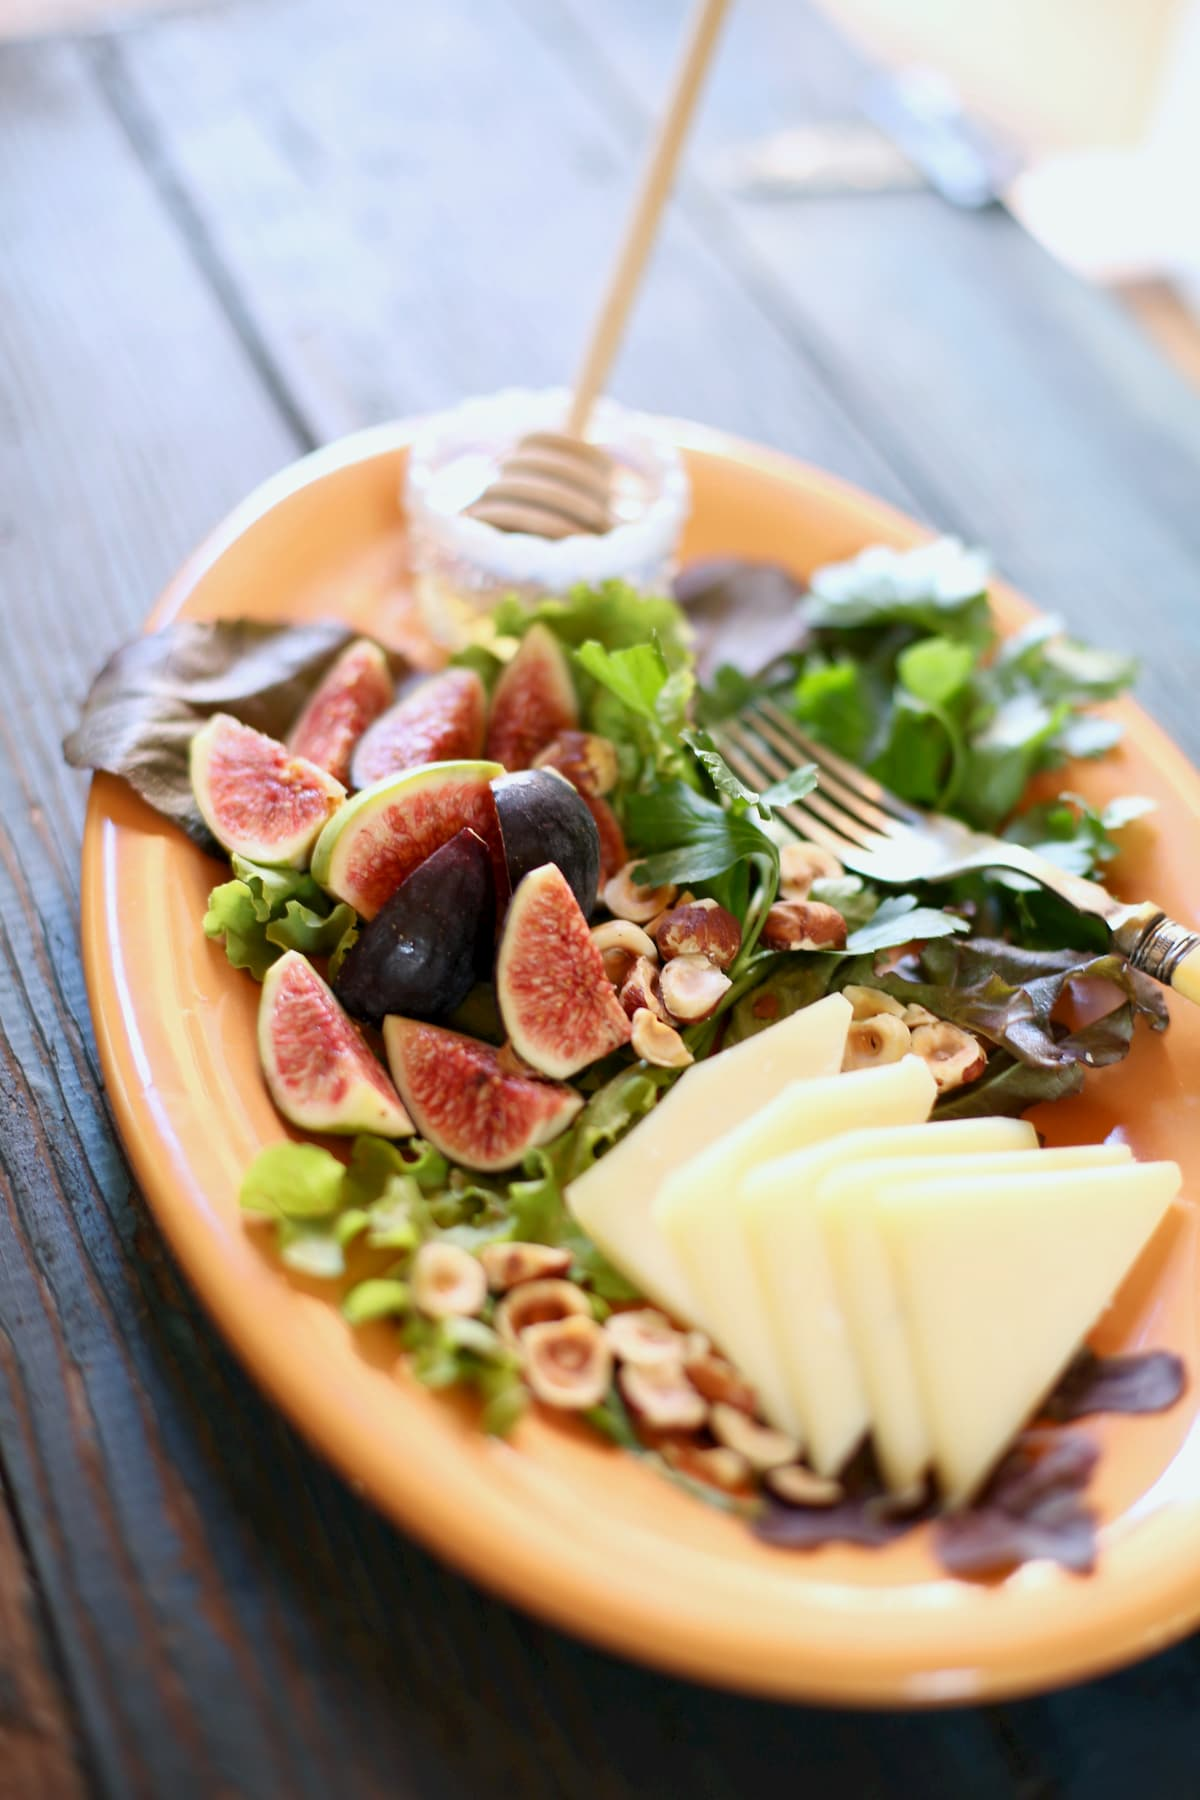 Figs, cheese and hazlenuts and honey on an orange platter